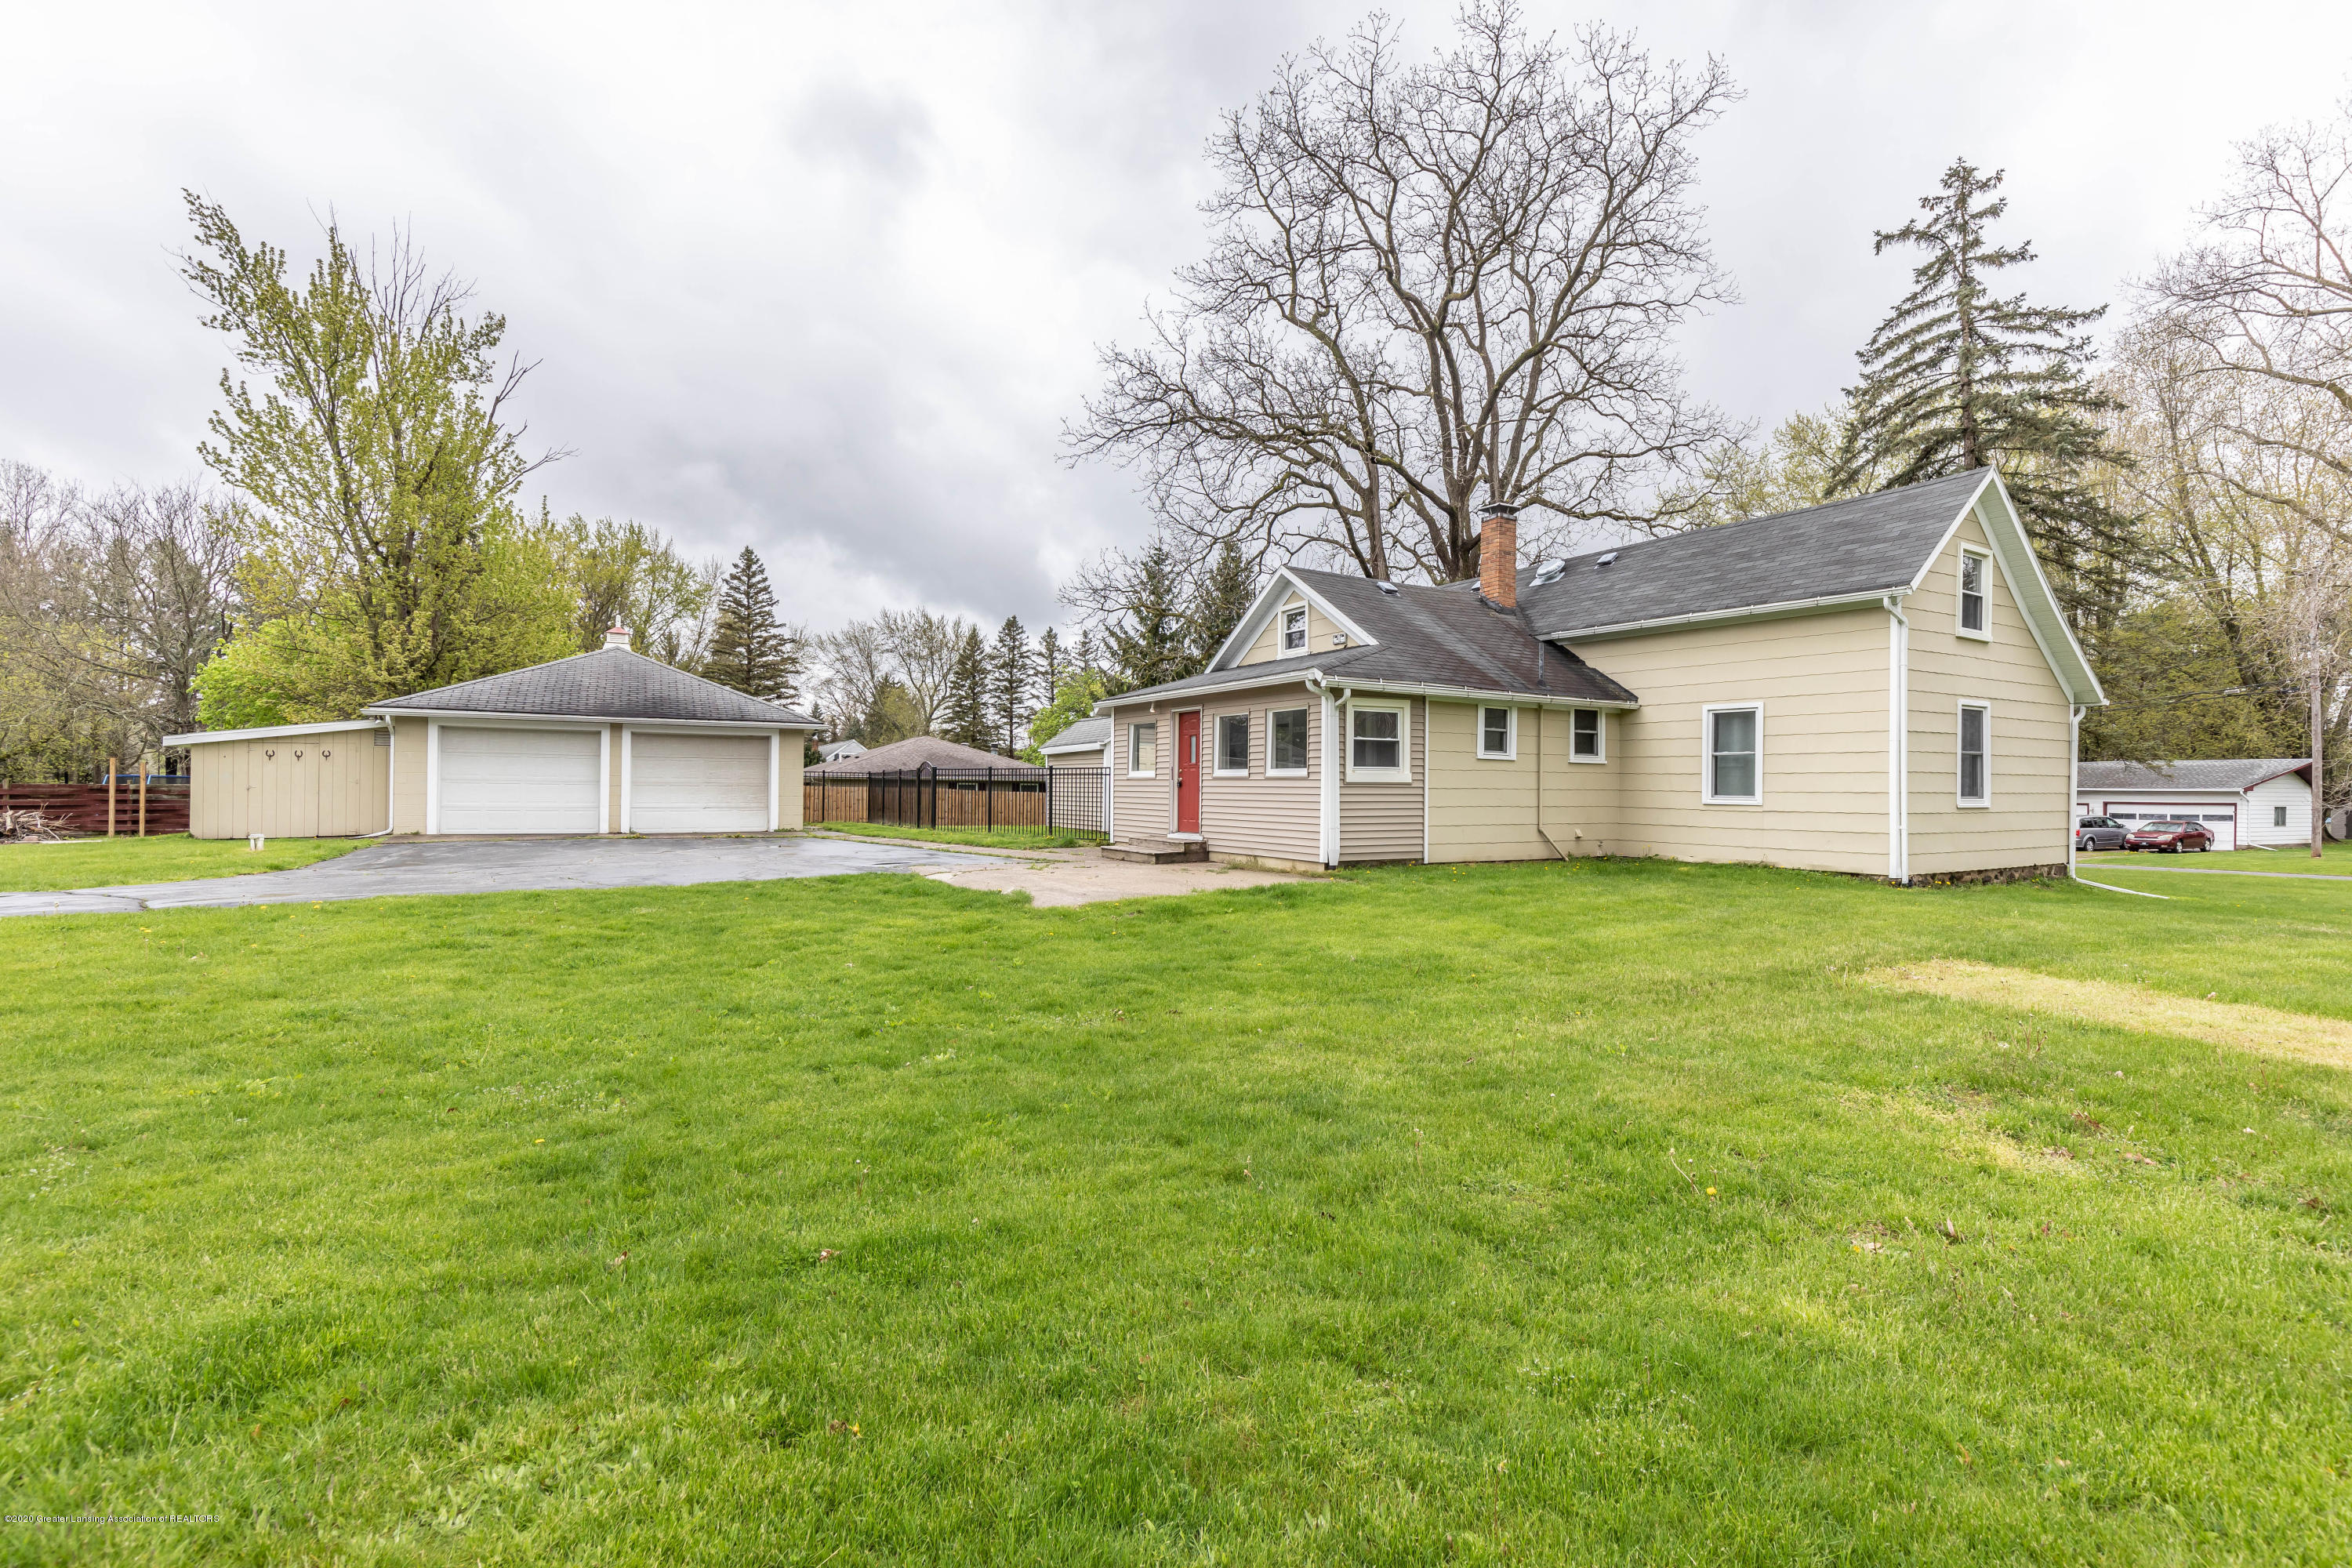 5104 Meridian Rd - House and garage - 1